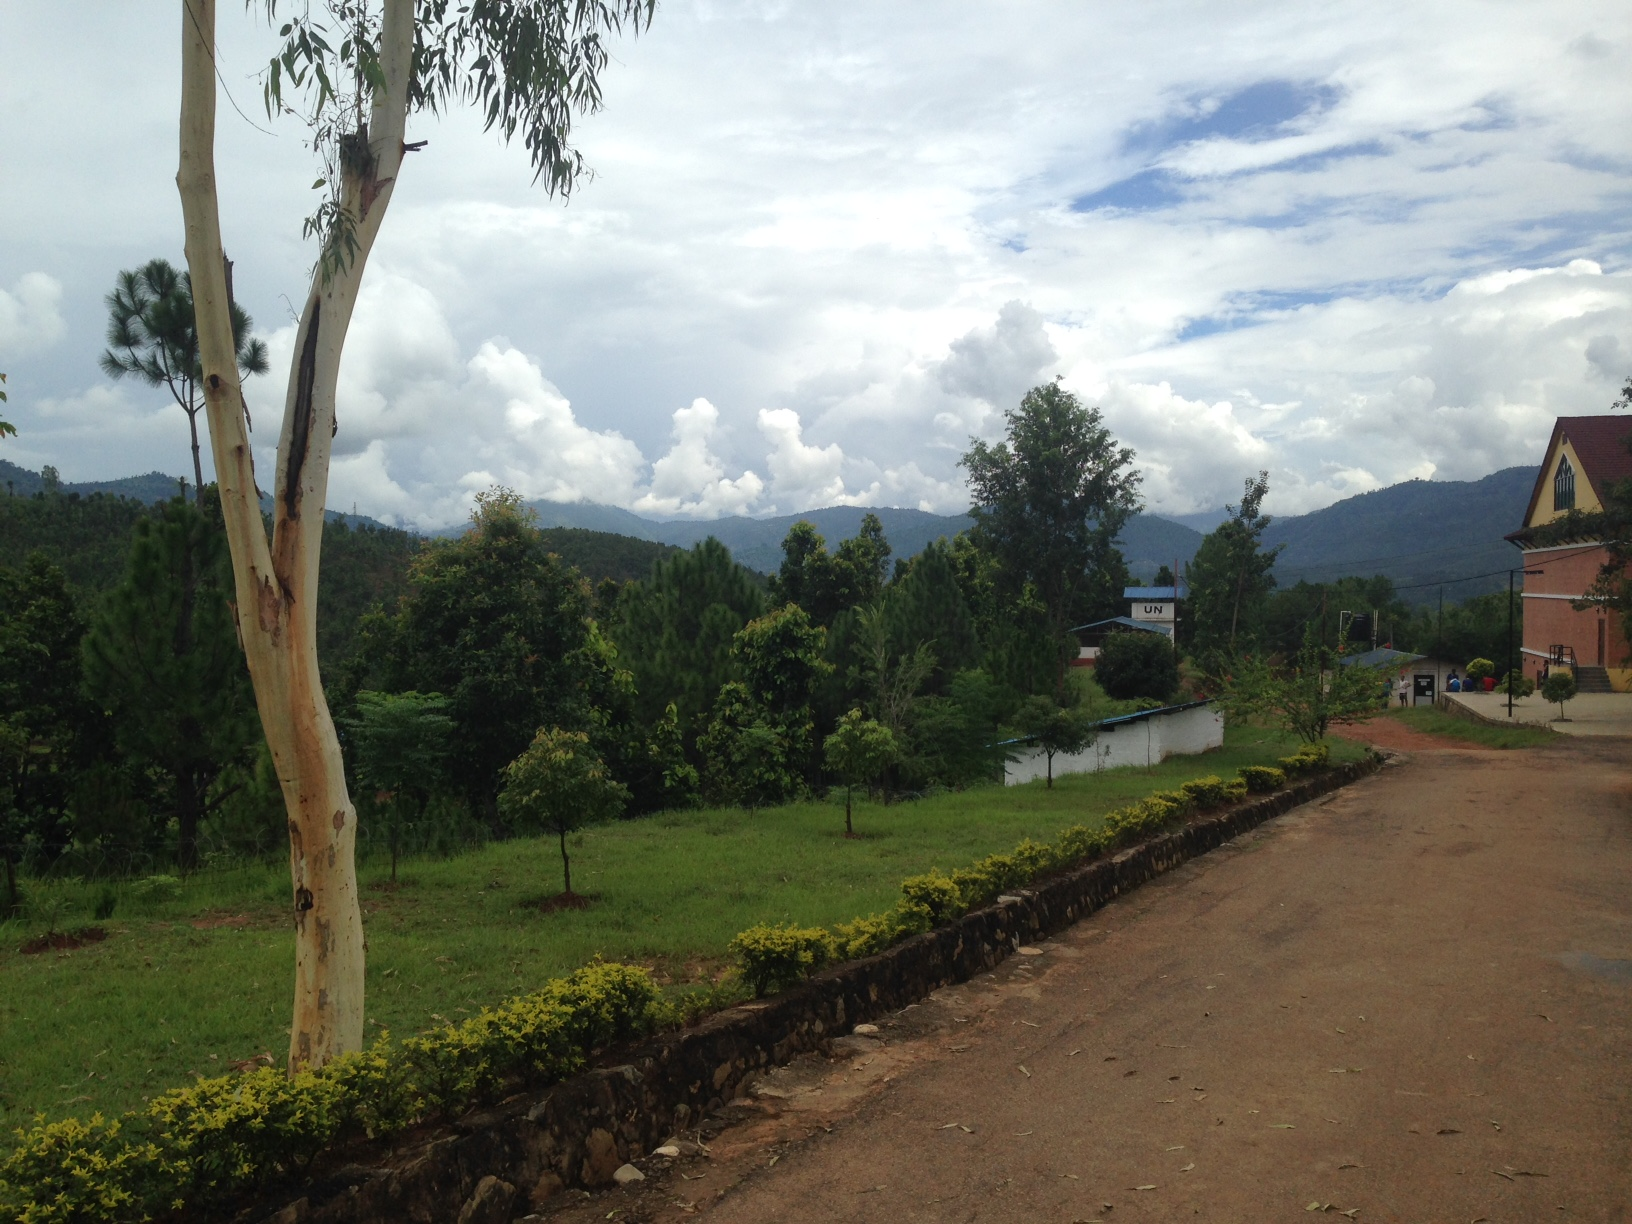 The view at the Nepali Trg Centre